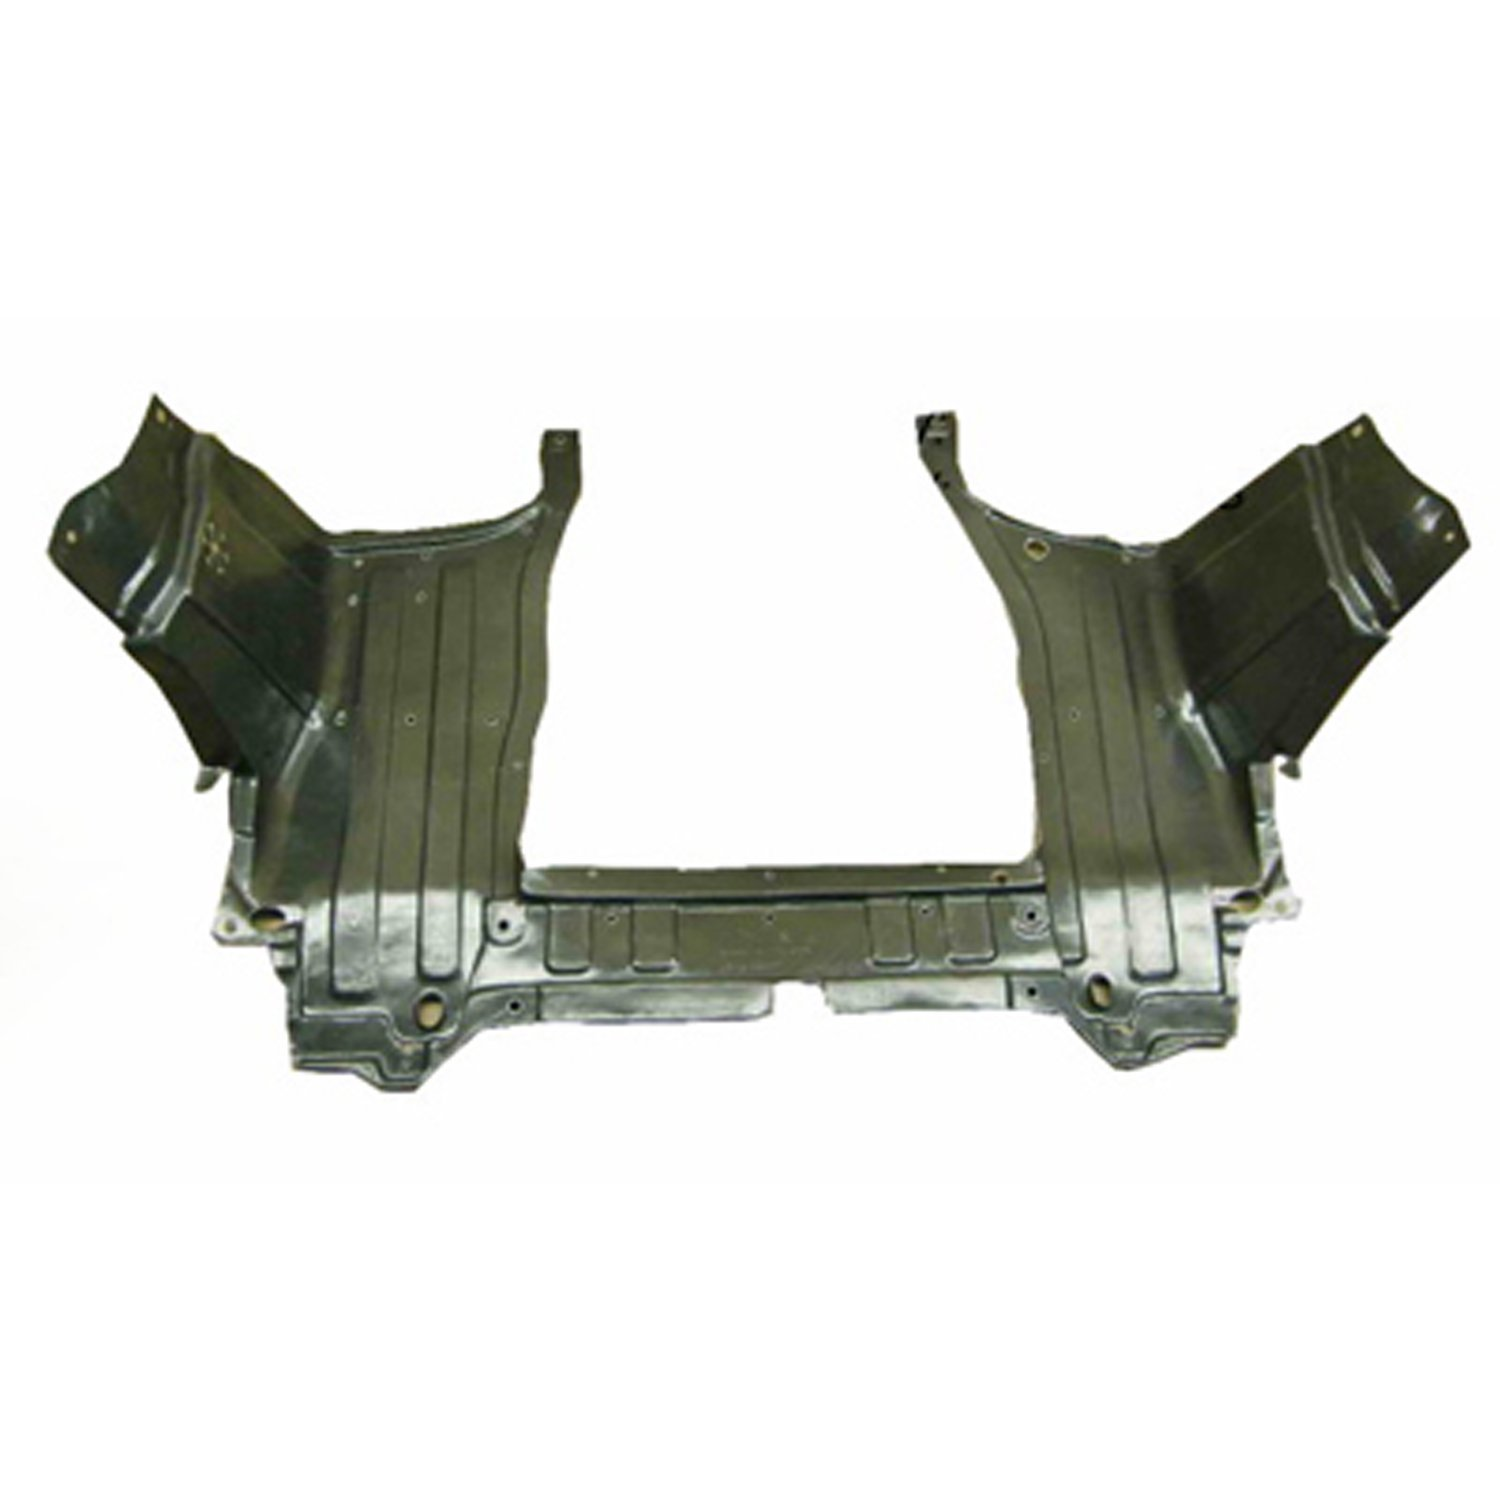 hight resolution of get quotations crash parts plus ho1228125 lower engine cover for 2009 2013 honda fit